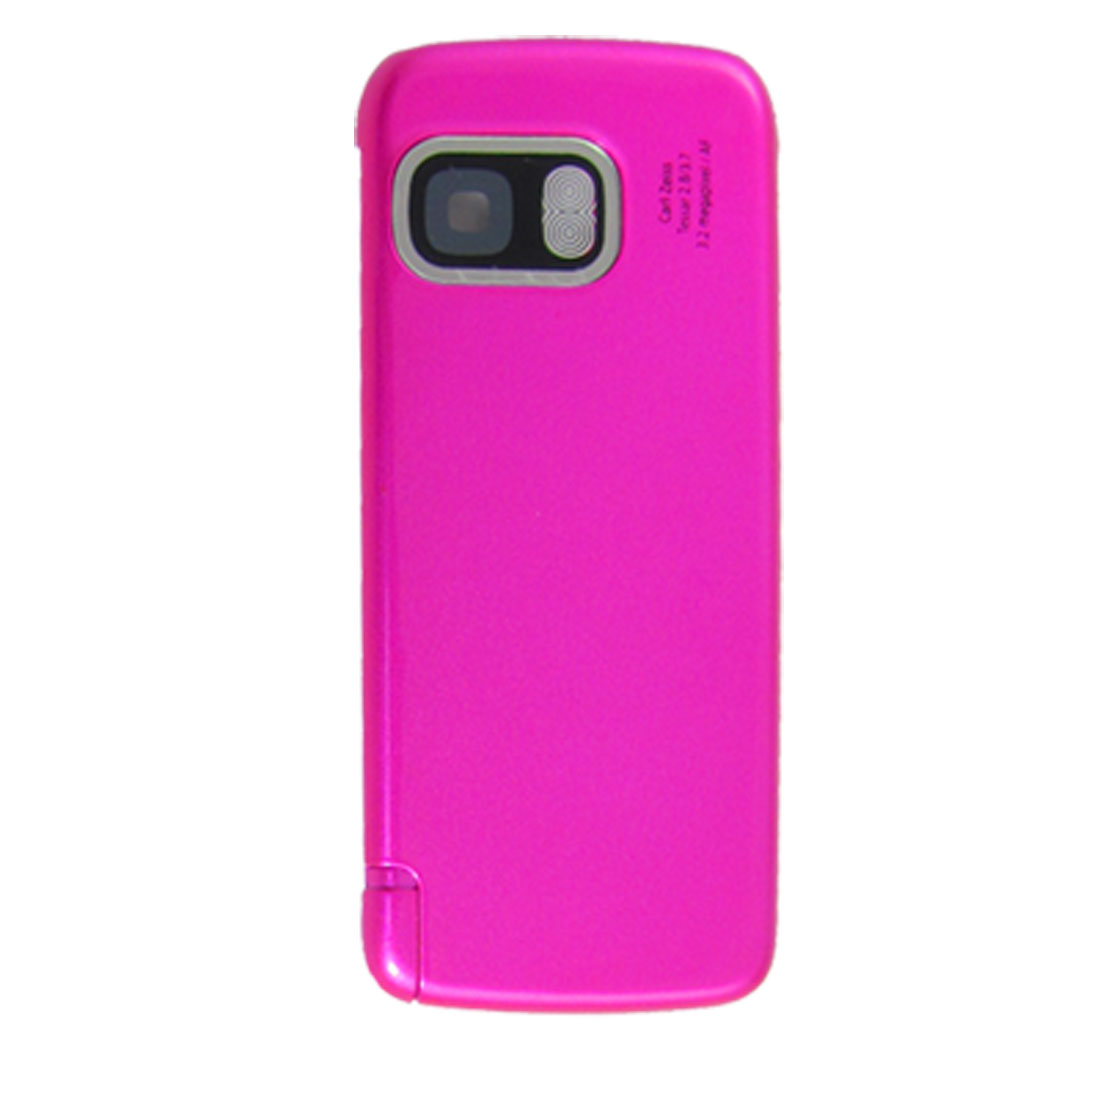 Hot Magenta Hard Plastic Battery Door Case Cover for Nokia 5800